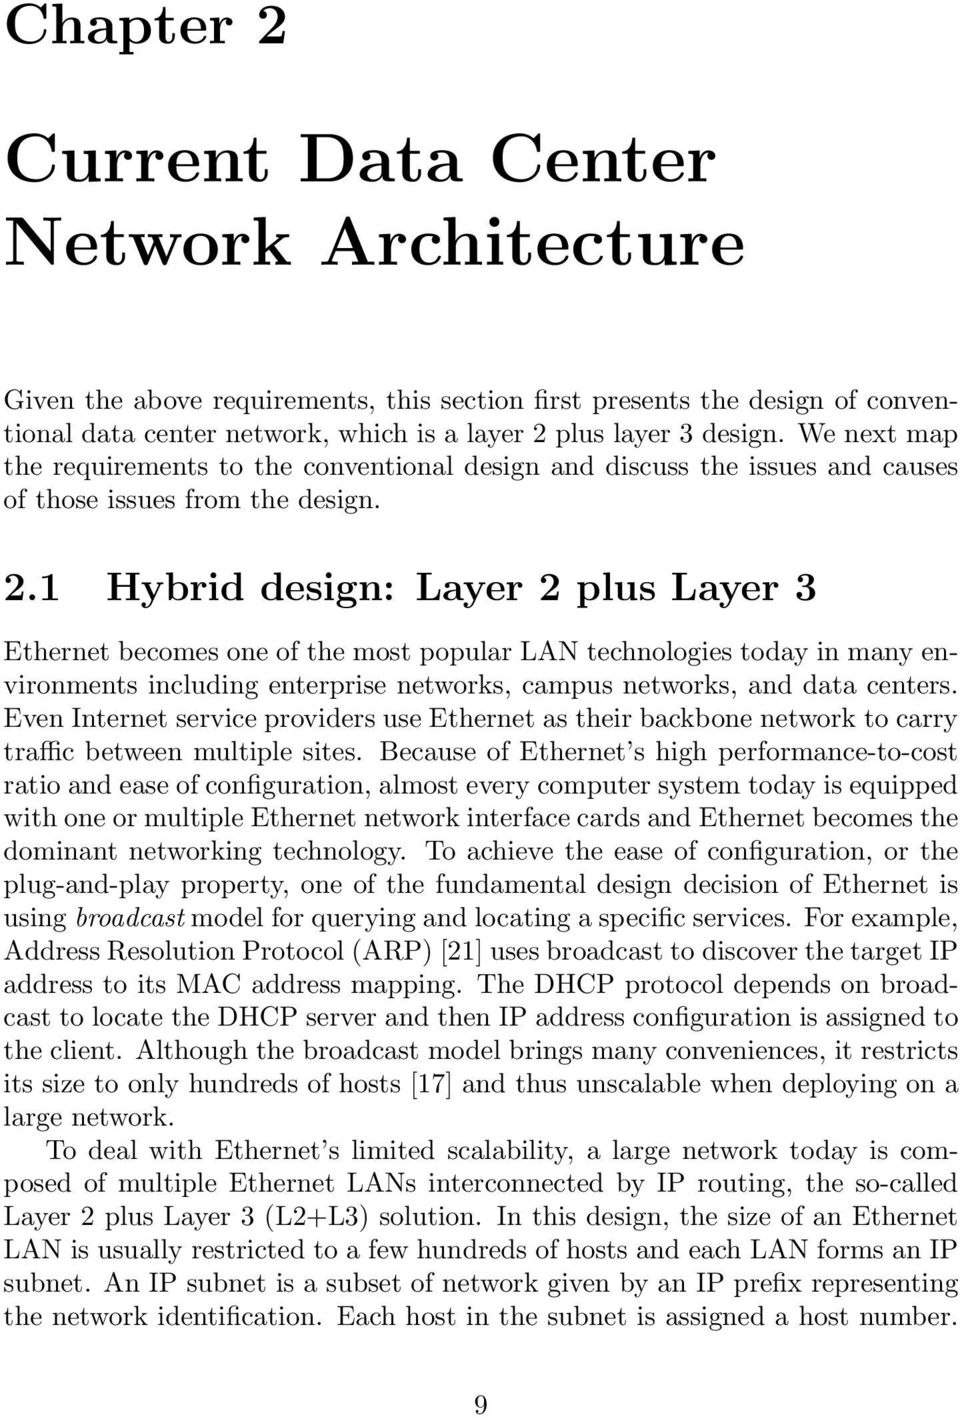 1 Hybrid design: Layer 2 plus Layer 3 Ethernet becomes one of the most popular LAN technologies today in many environments including enterprise networks, campus networks, and data centers.